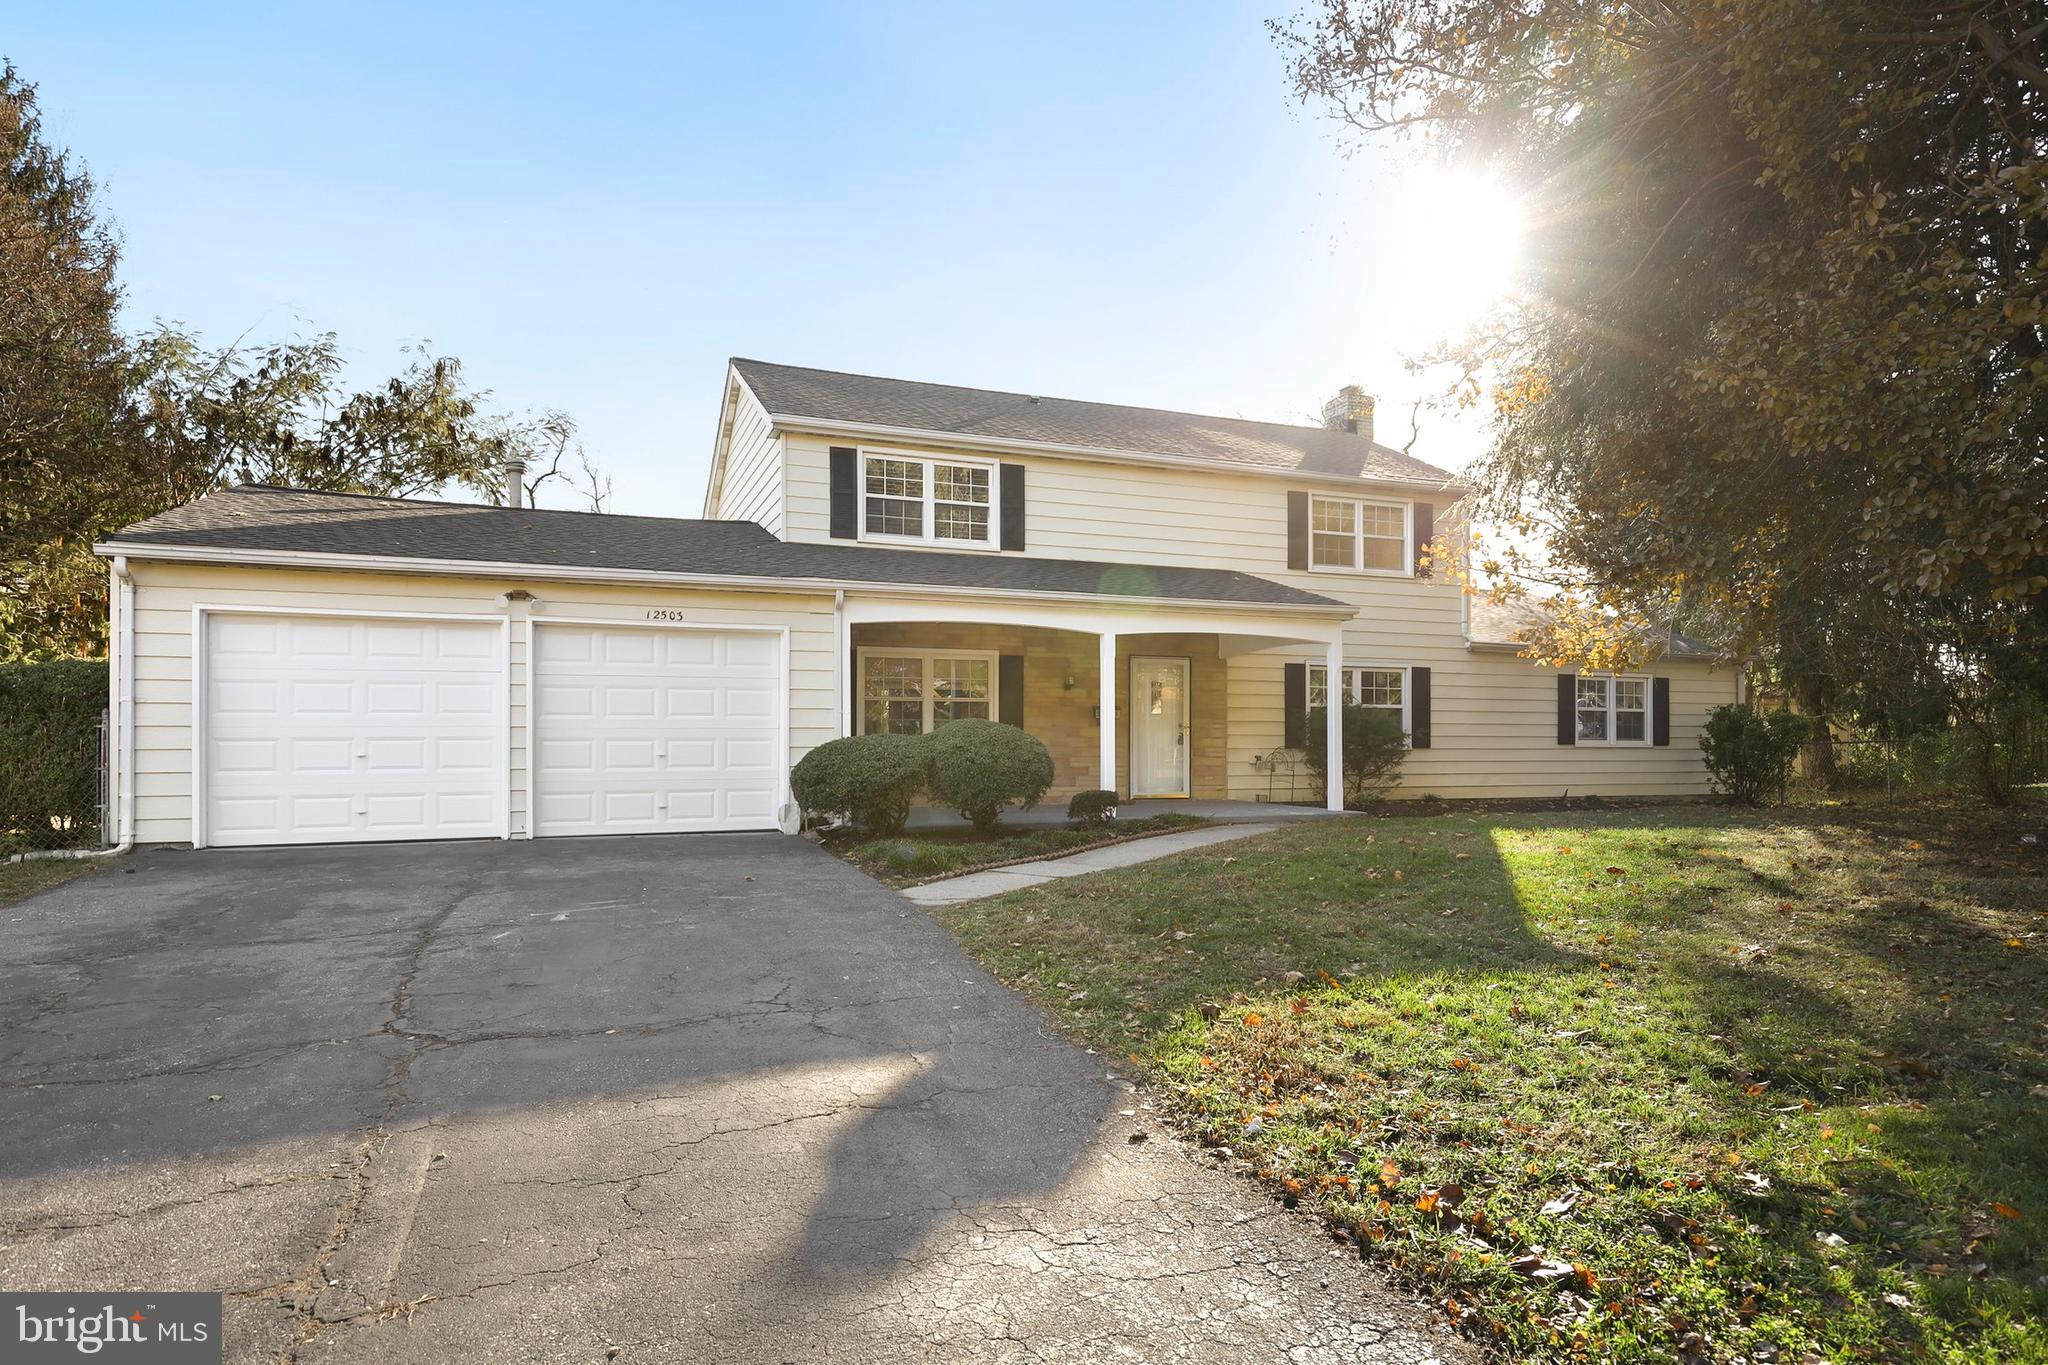 12503 HEMM PLACE, BOWIE, MD 20716